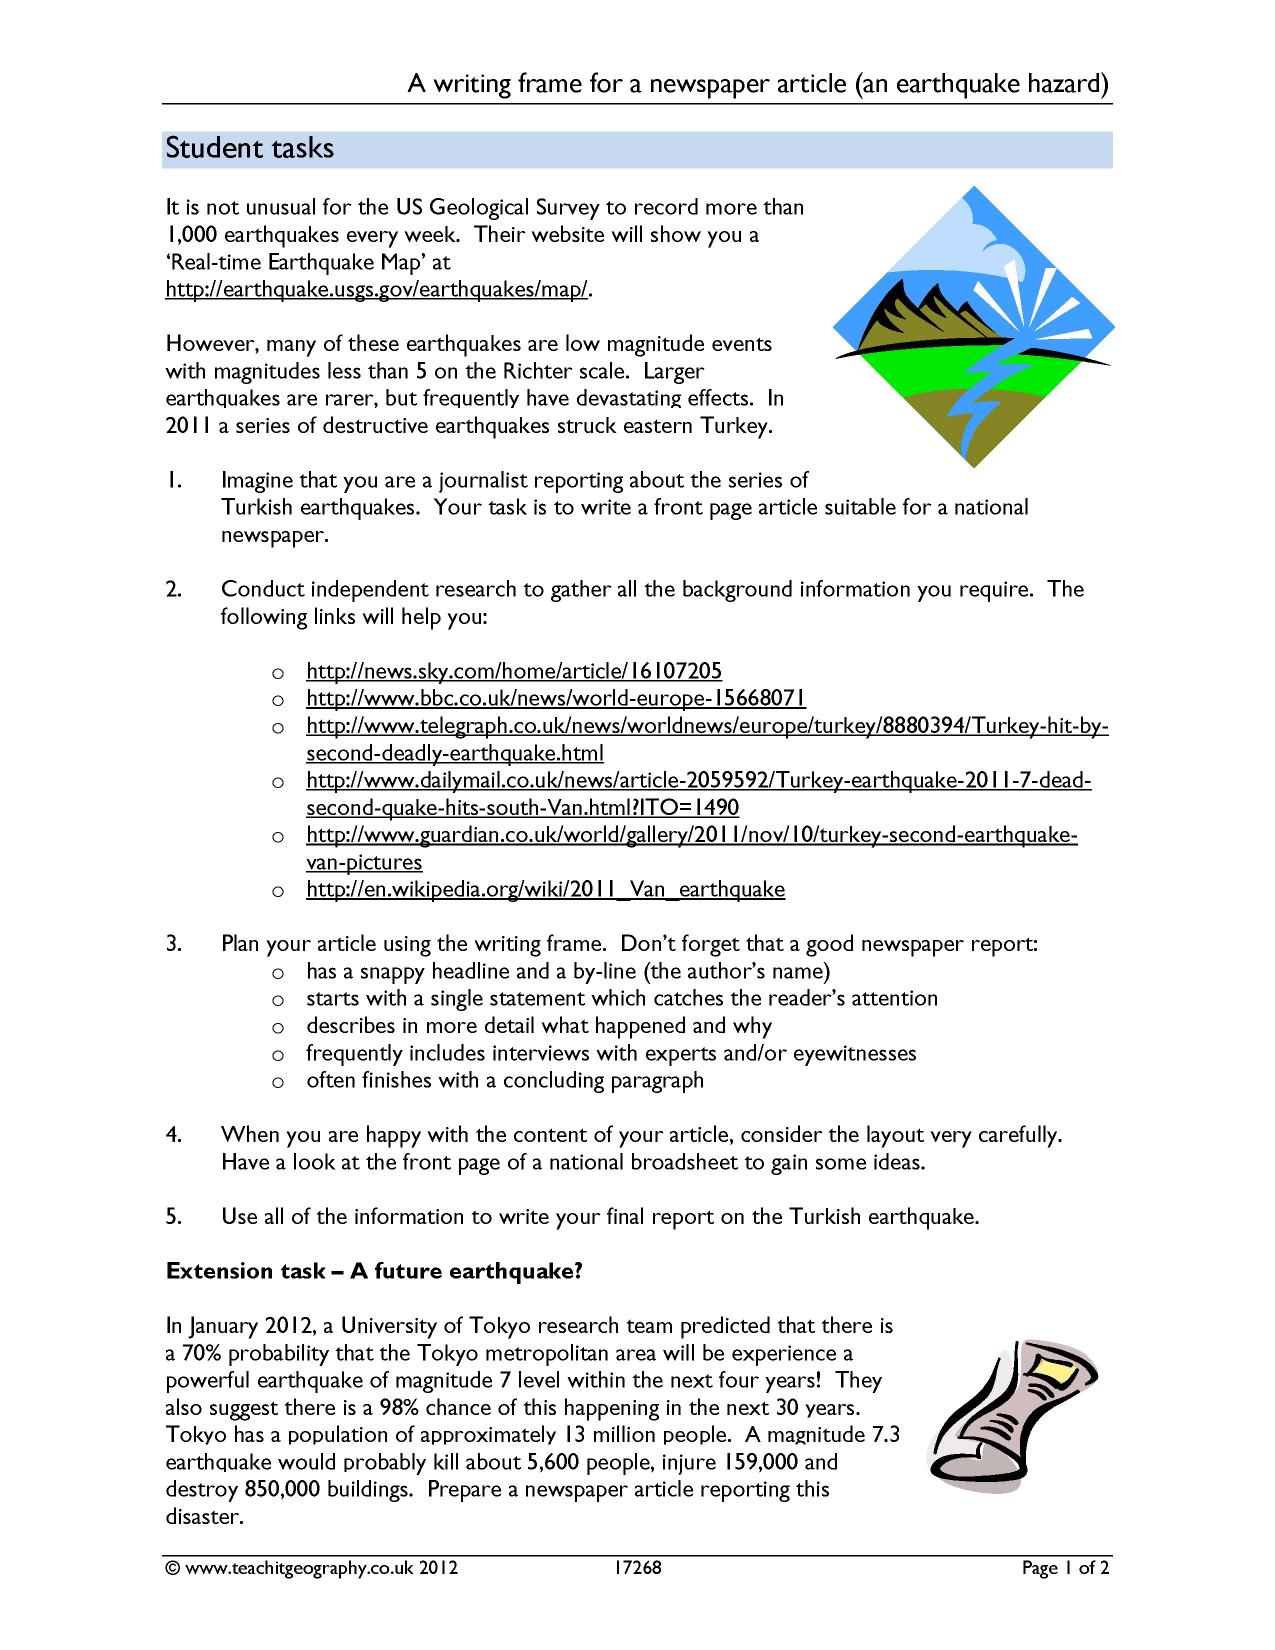 geography essays structure Geography 20 mark exam essays  is there a structure/scaffold which  not sure if you still need help but so far for geography i feel like a general scaffold.